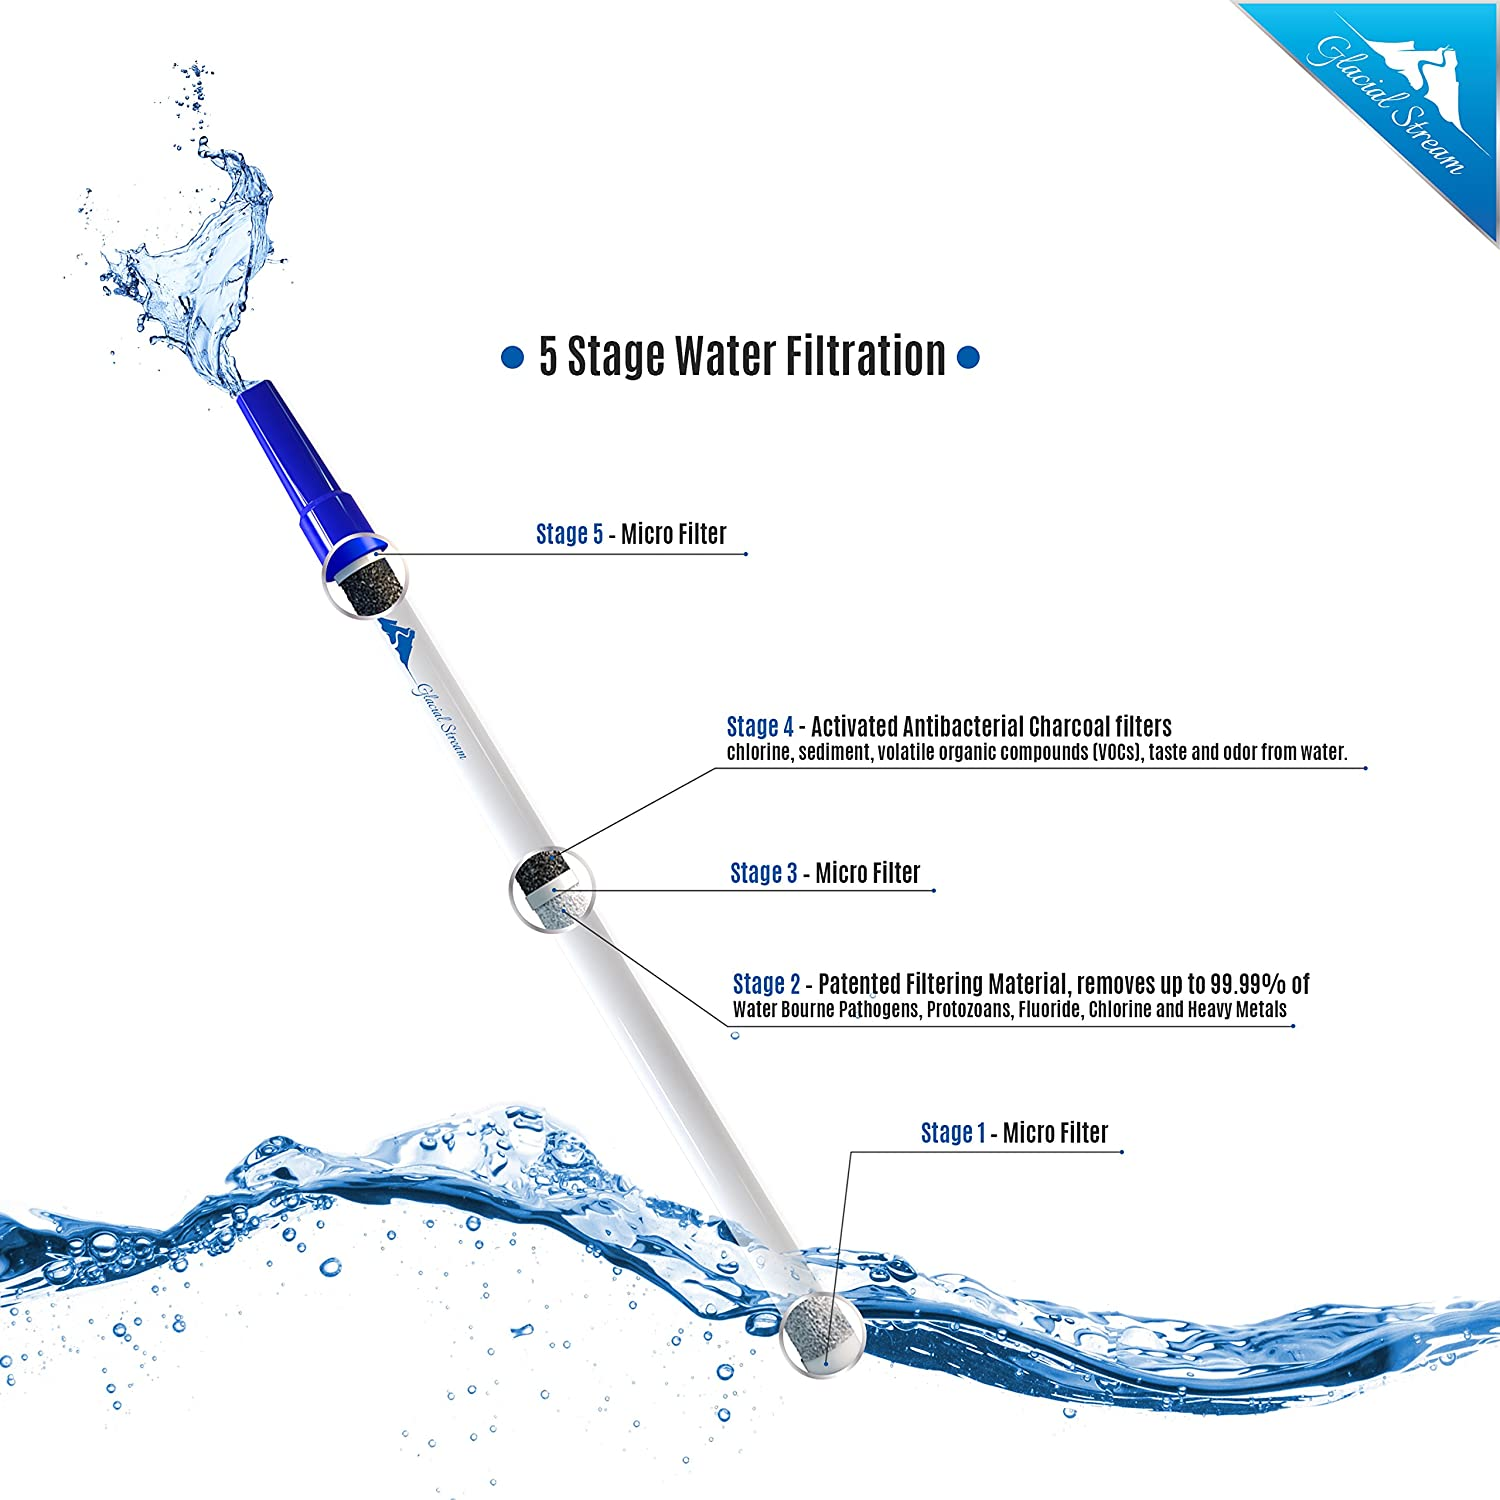 Personal Water Filter Straw Portable Purifier for Filtering Purification when at Home Camping Hiking Survival Backpacking Emergency Travel w//Patented Technology Fits in Bottles Storage Tube Included